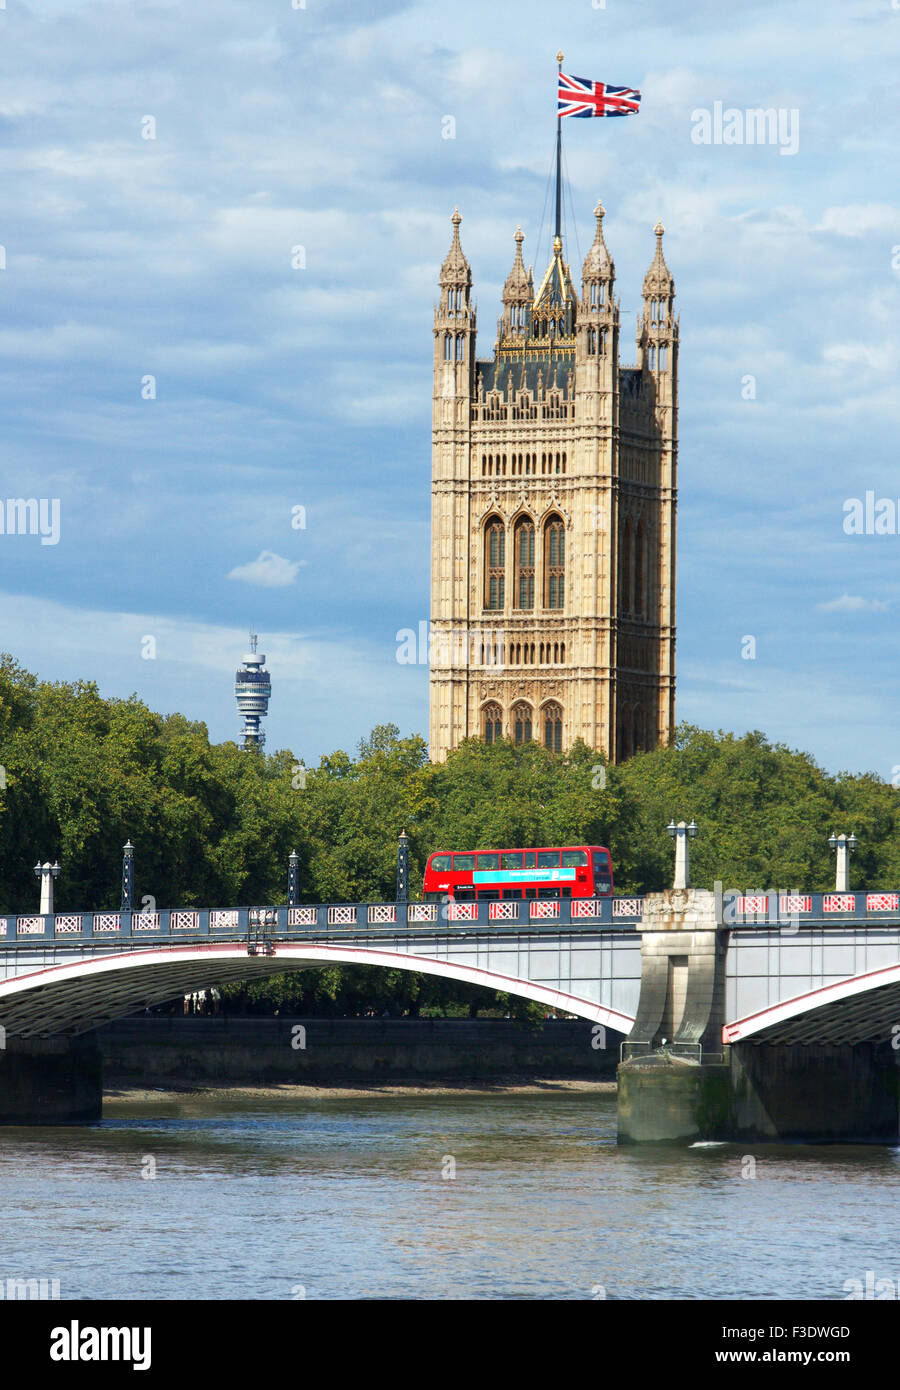 Red Bus crossing Lambeth Bridge in front of the Houses of Parliament and the BT Telecommunications Tower, London, - Stock Image